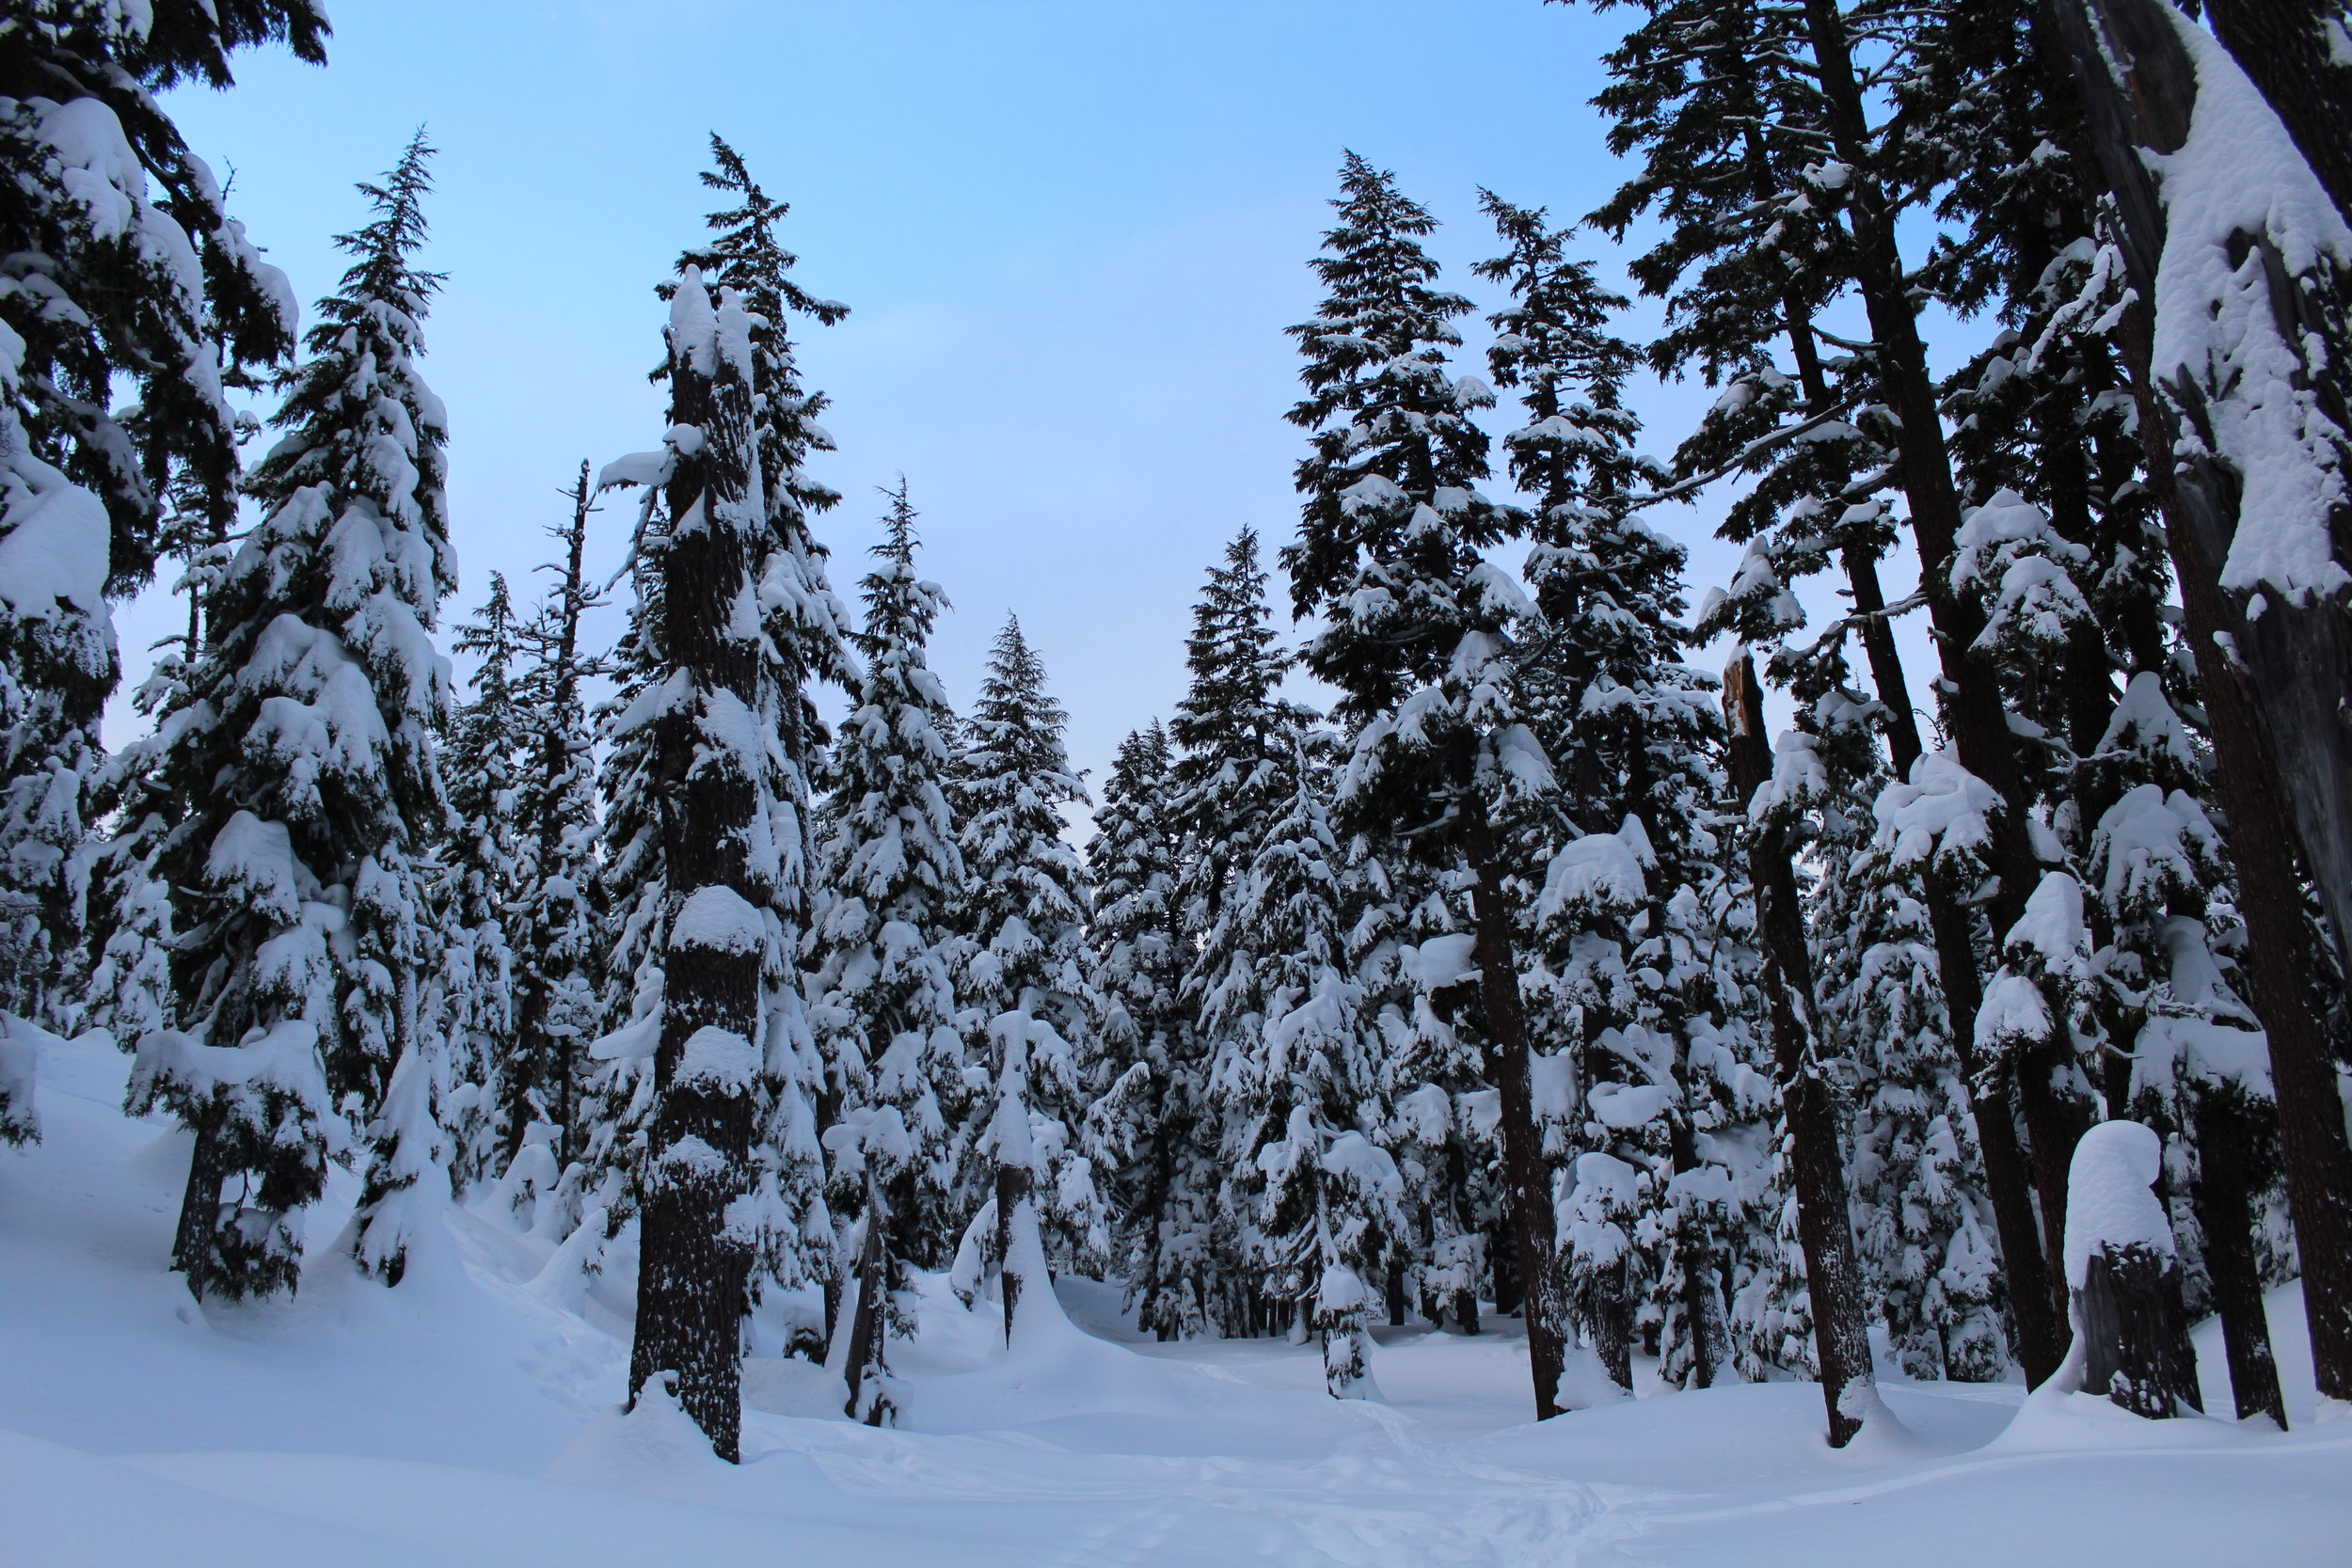 snowshoe through the forest